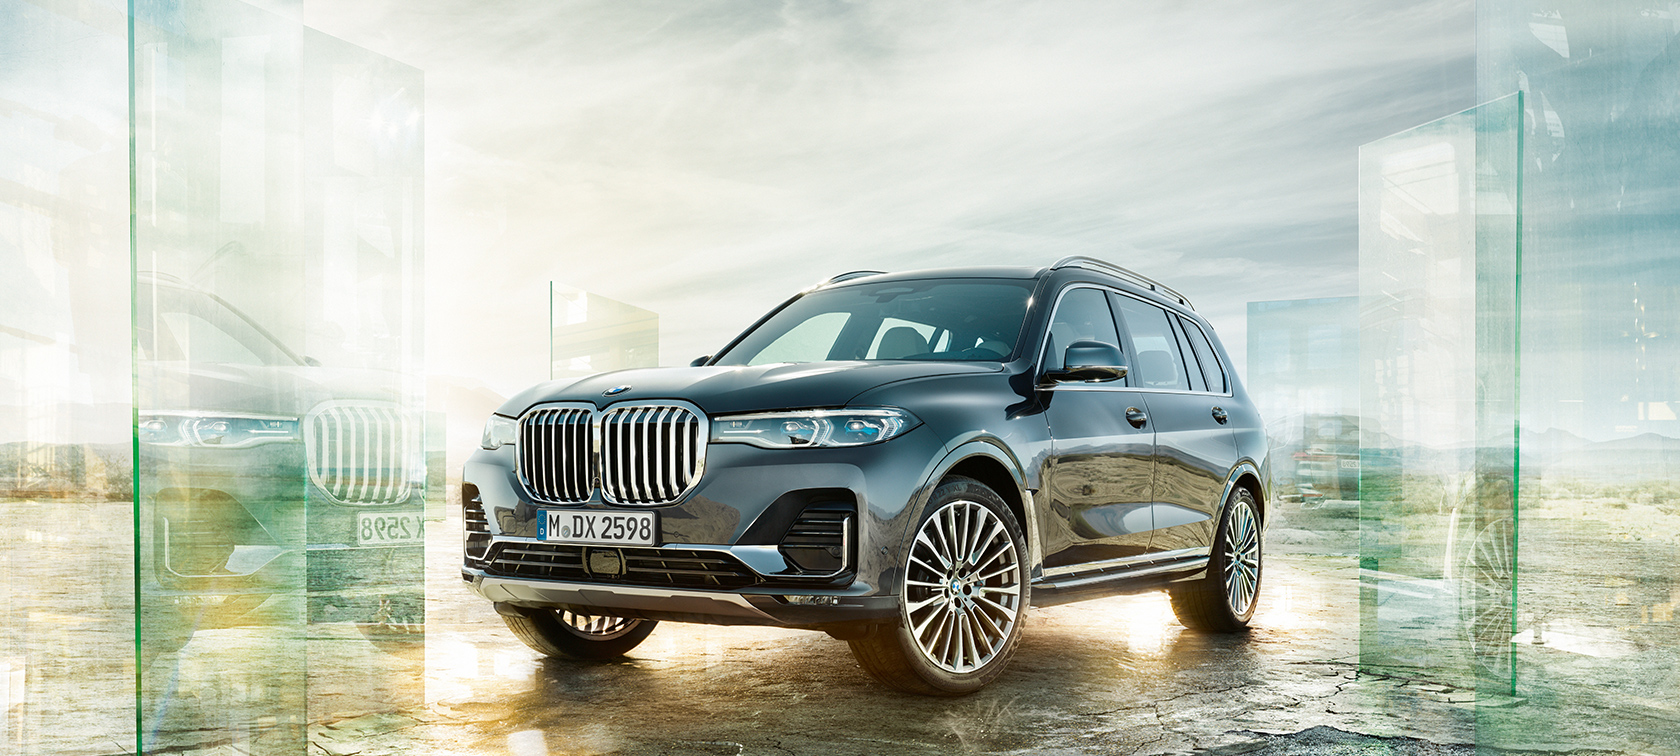 BMW X7 in the three-quarter front view in front of the desert background